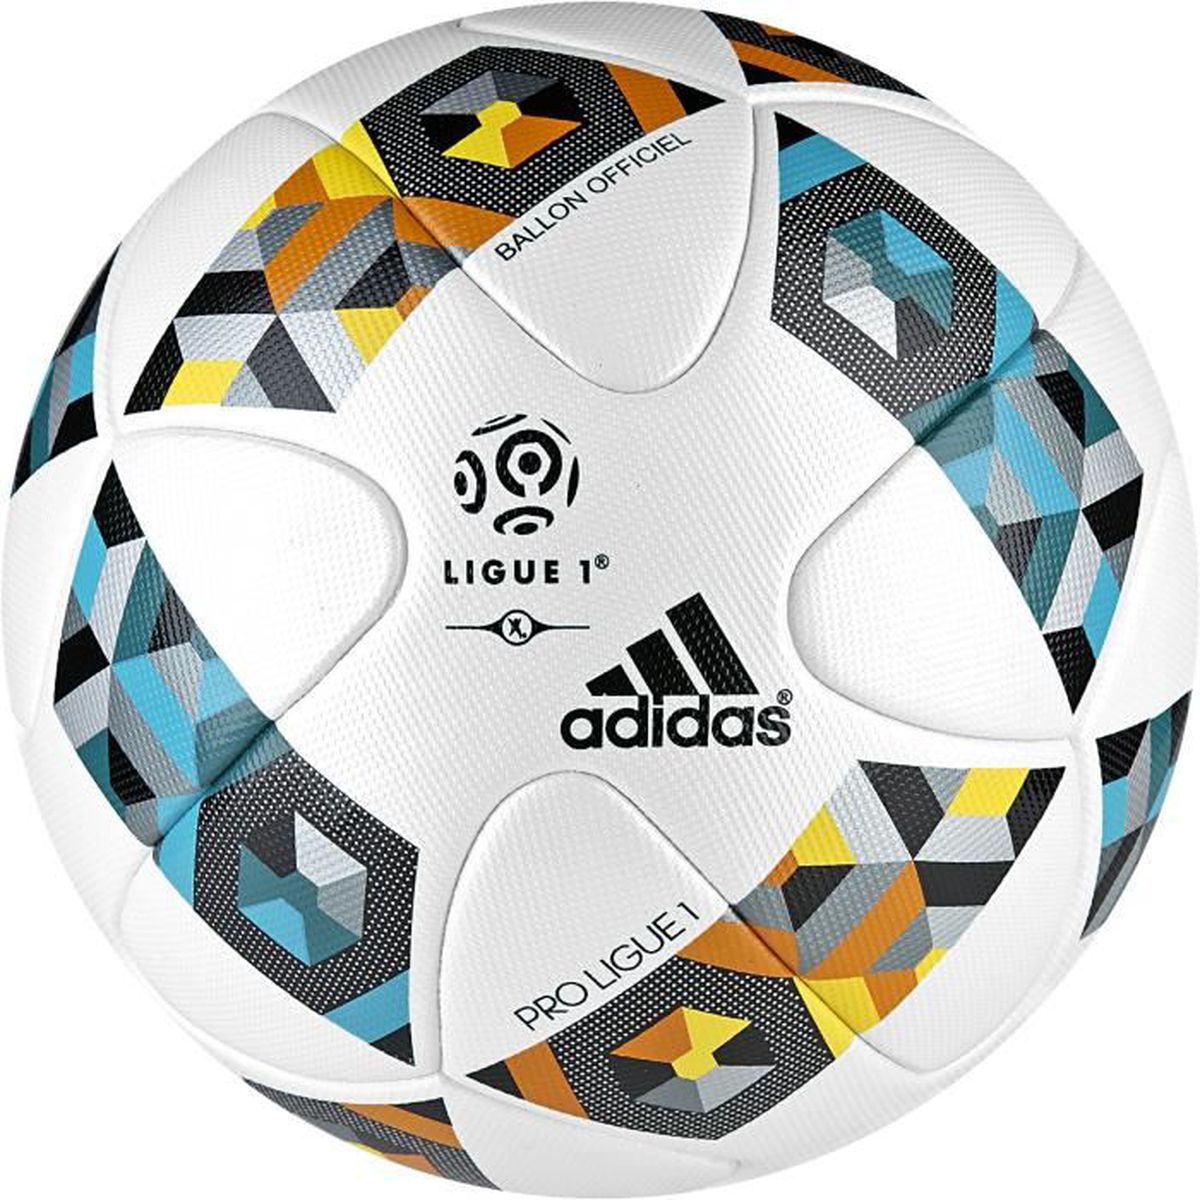 ballon de foot pas cher ligue 1 adidas proligue1mini ao4816 blanc rousol jausol. Black Bedroom Furniture Sets. Home Design Ideas